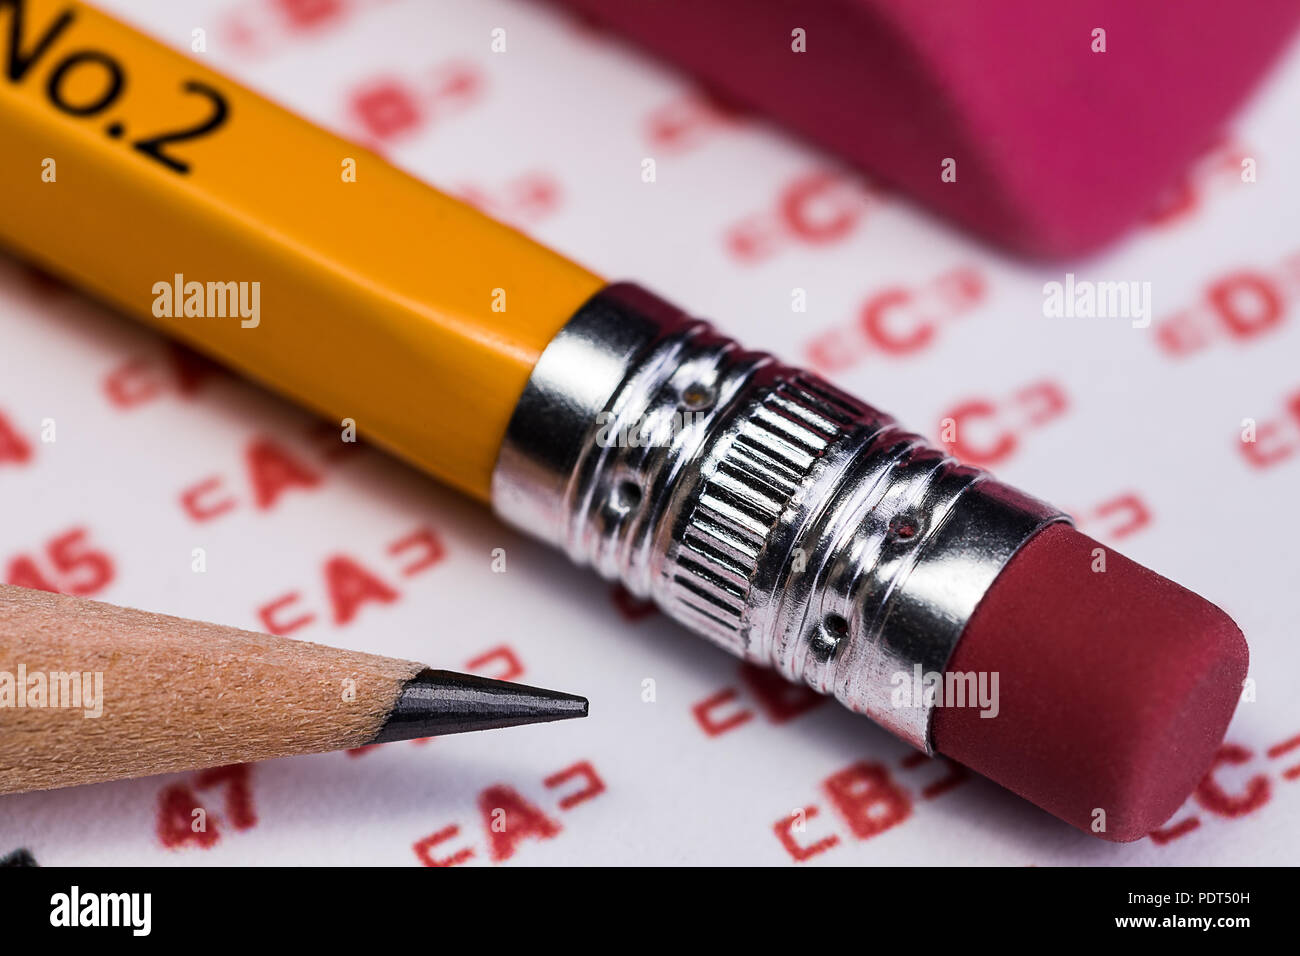 A 1:1 macro of the eraser end and the sharpened end of two #2 pencils laying by an eraser on a scantron answer sheet waiting to be used to take a stan - Stock Image